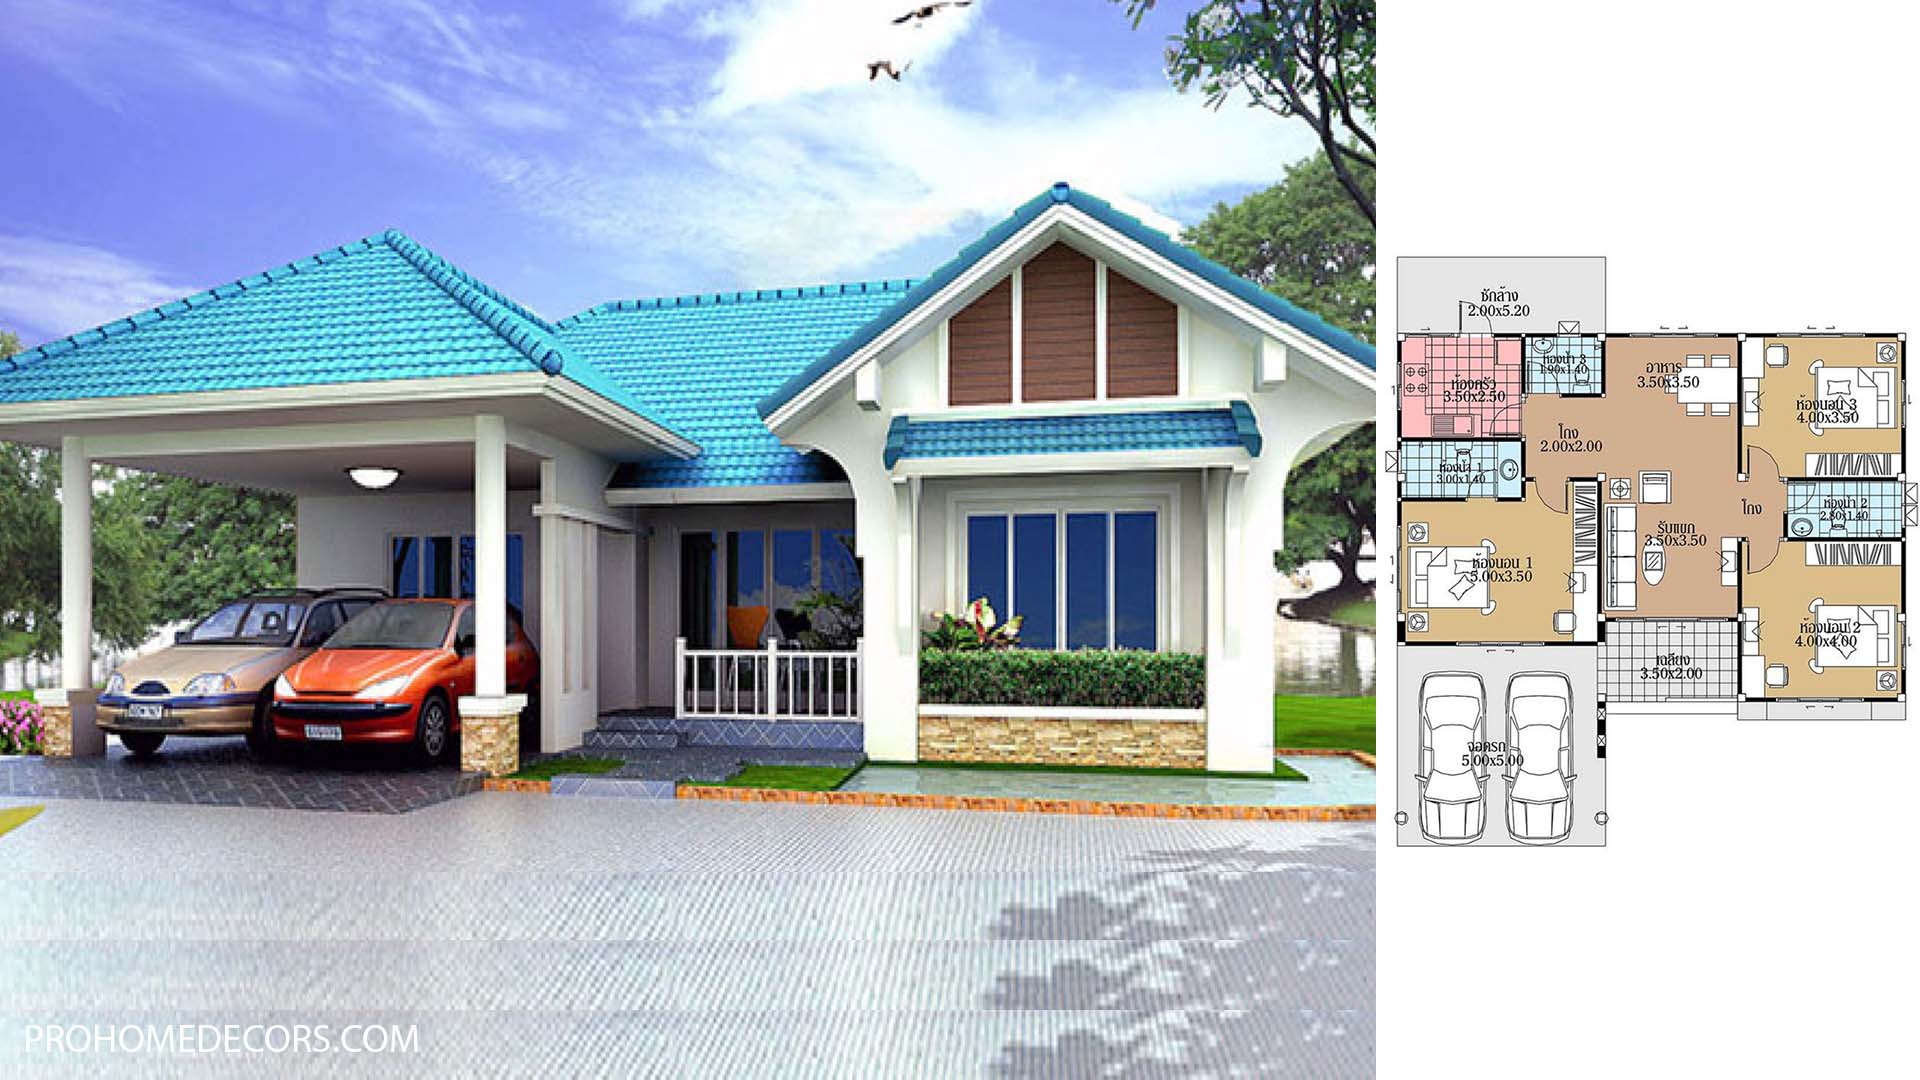 House Plans 12.5×12.5 with 3 Bedrooms